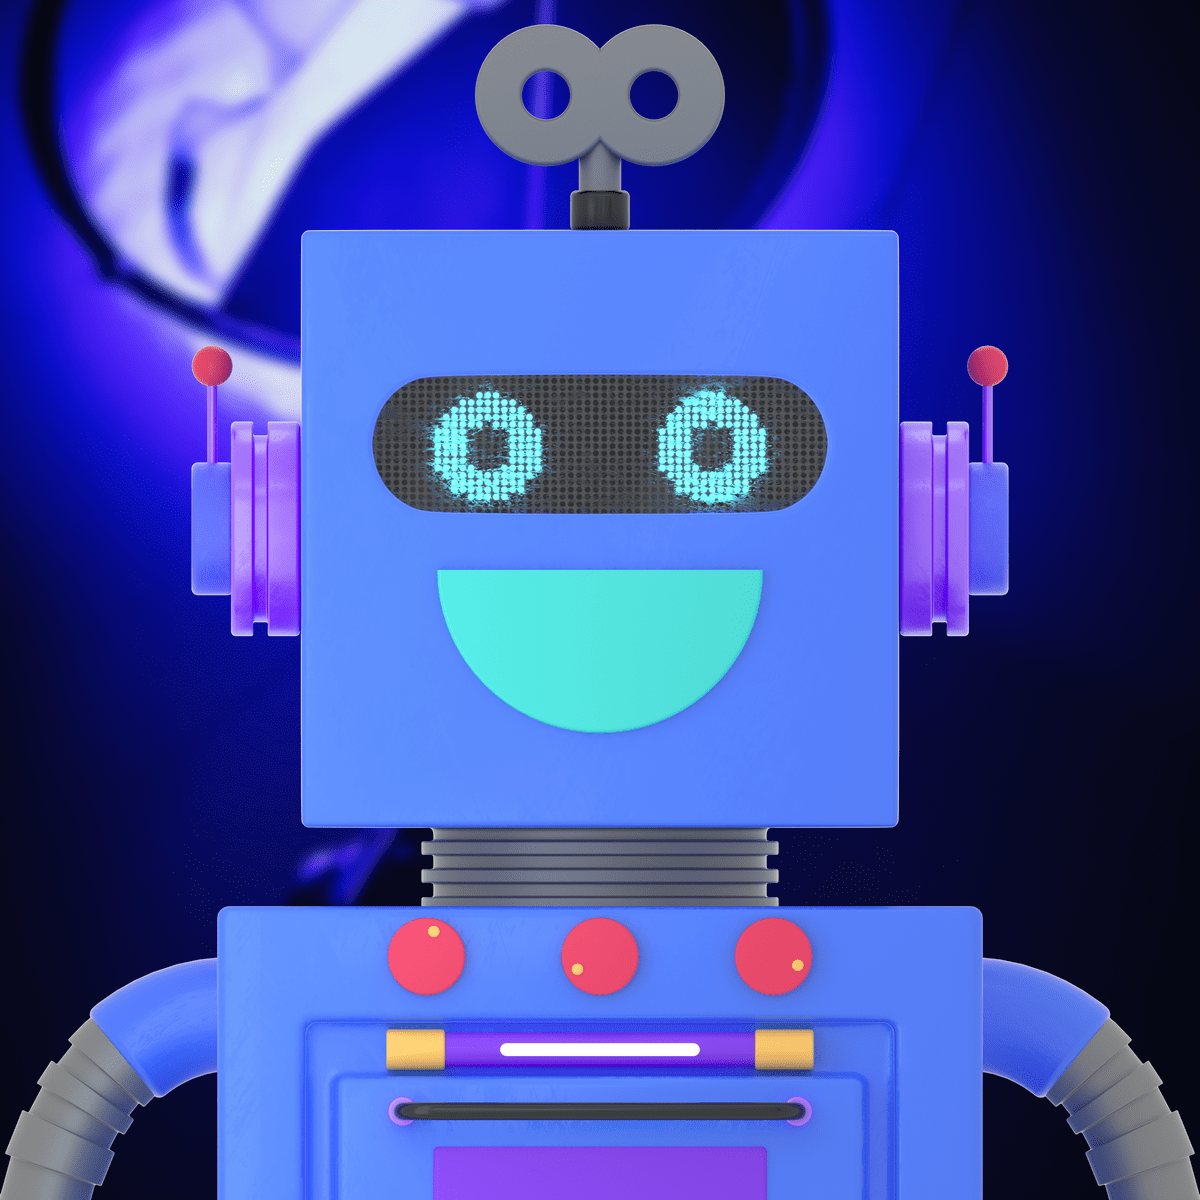 a blue robot character in 3d design style